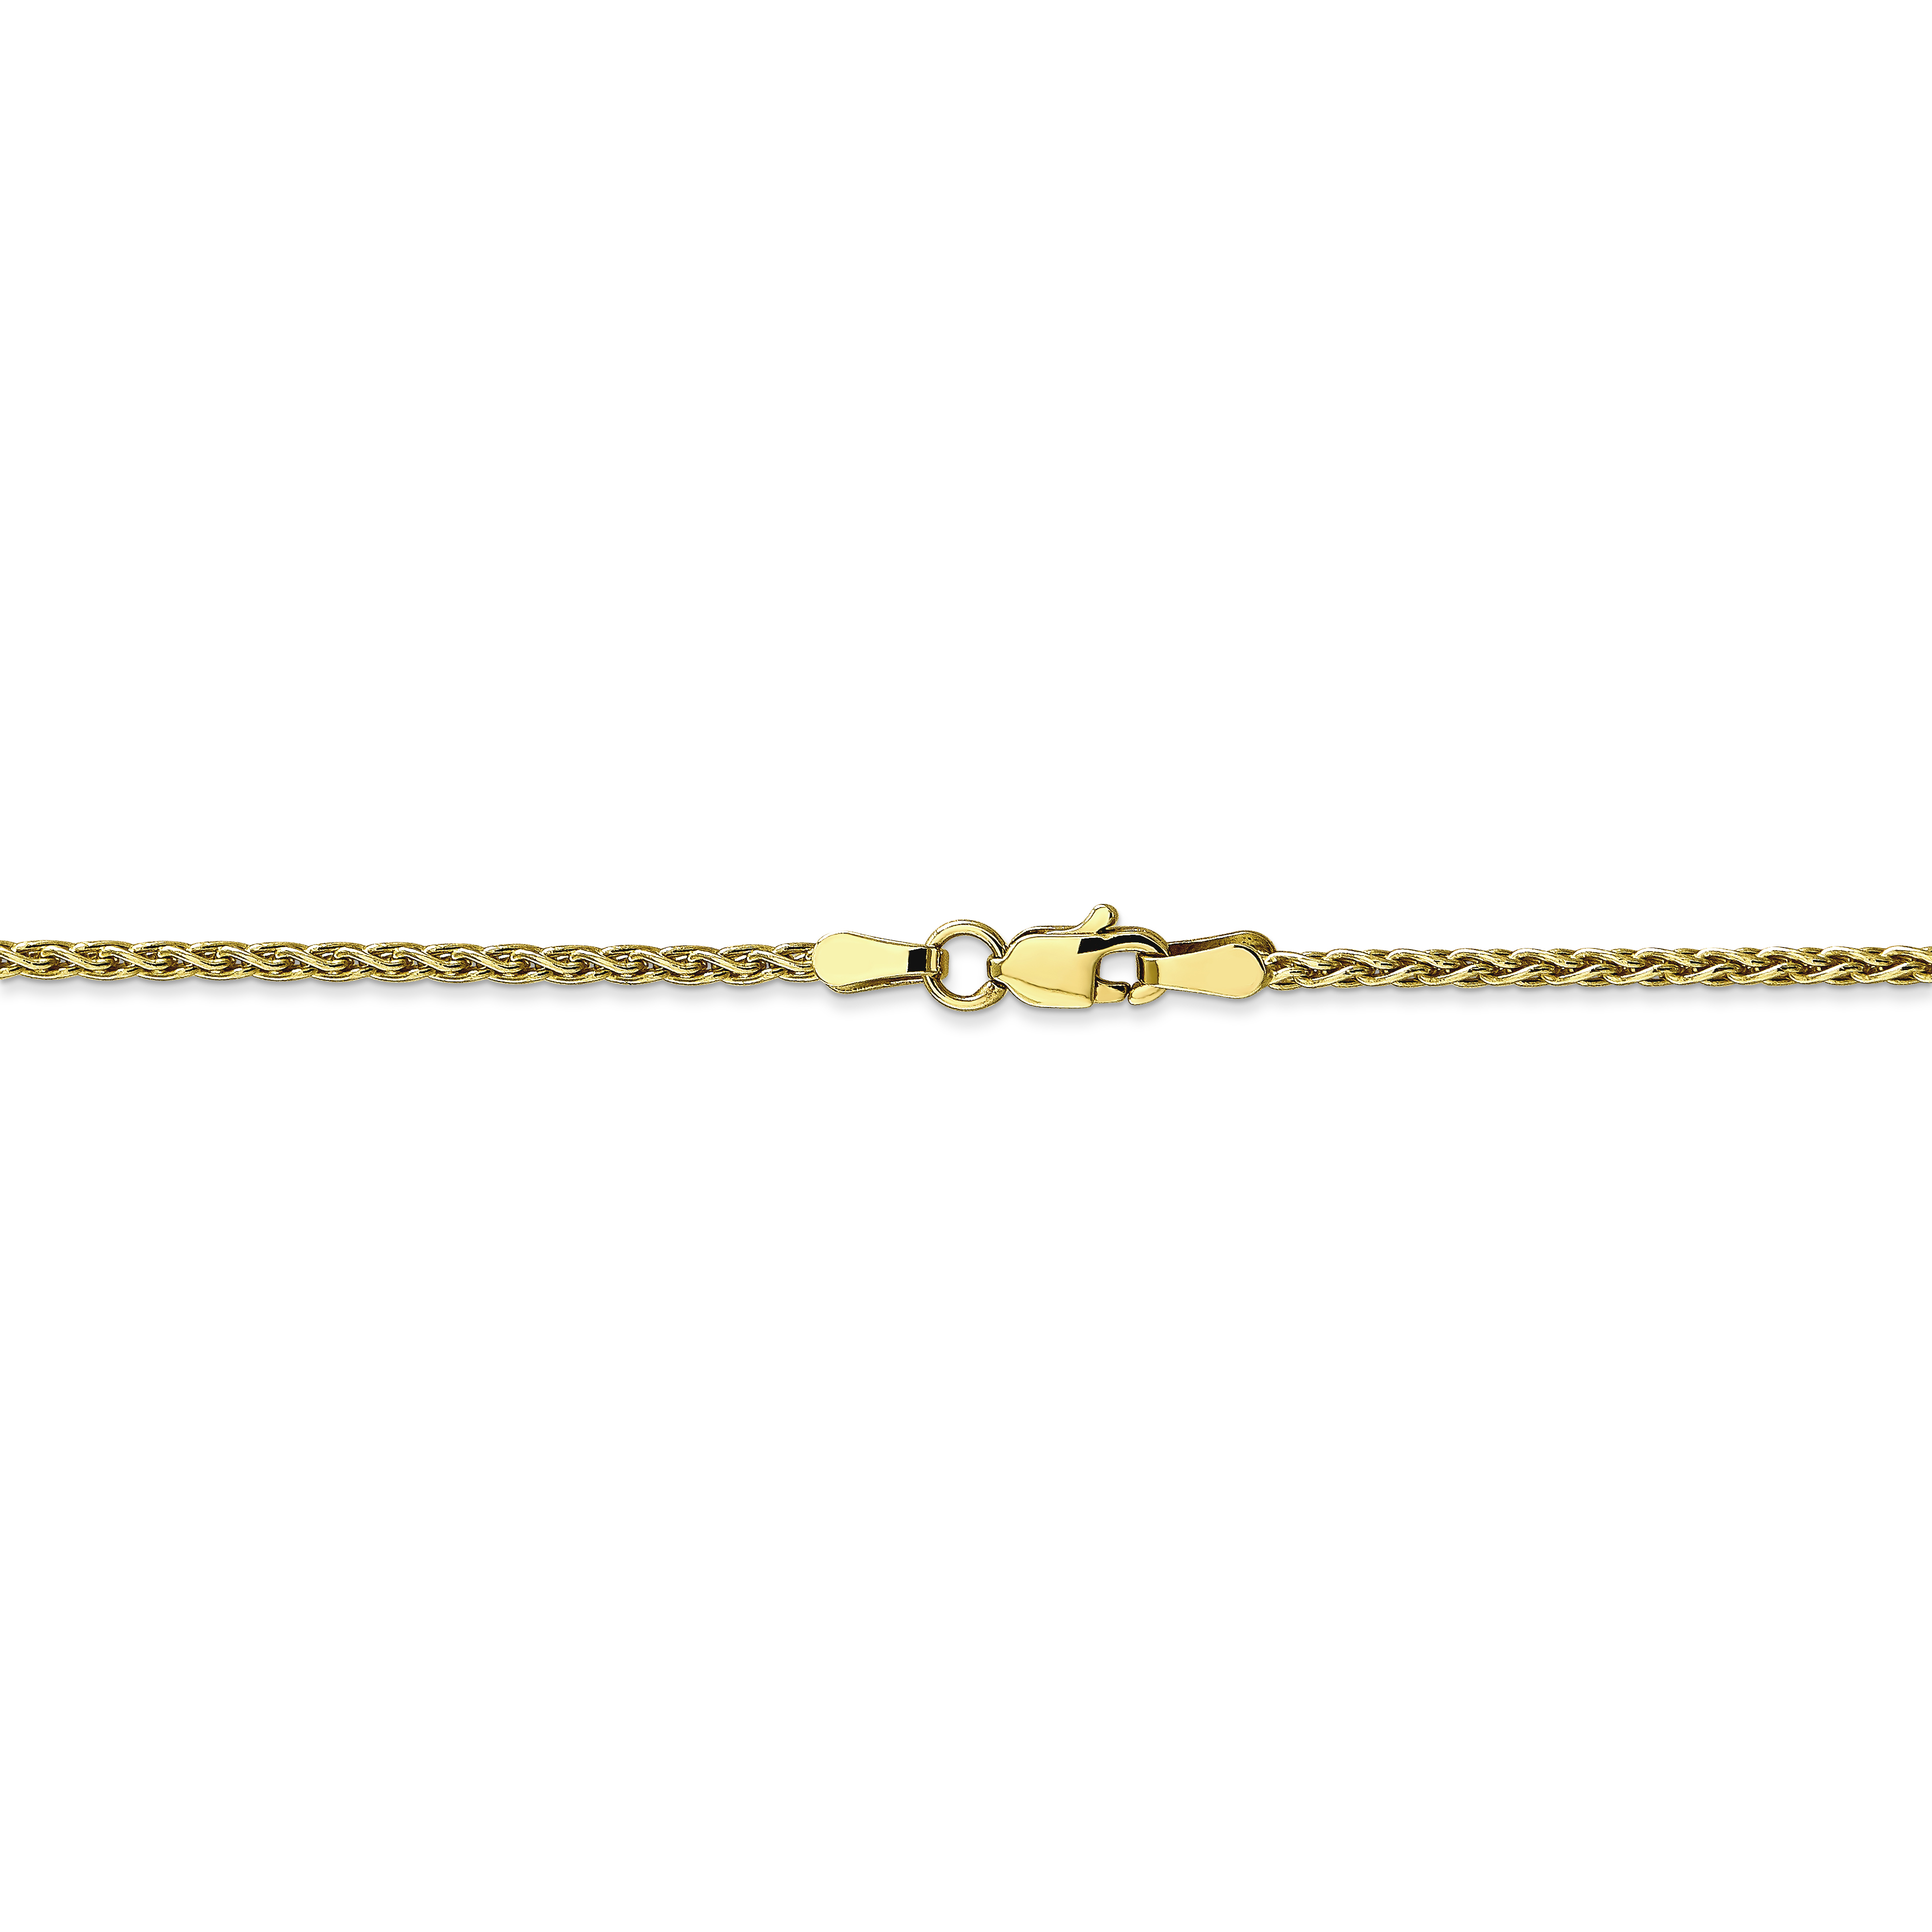 10k Yellow Gold 1.75mm Parisian Link Wheat Necklace Chain Pendant Charm Spiga Fine Jewelry Gifts For Women For Her - image 3 de 4